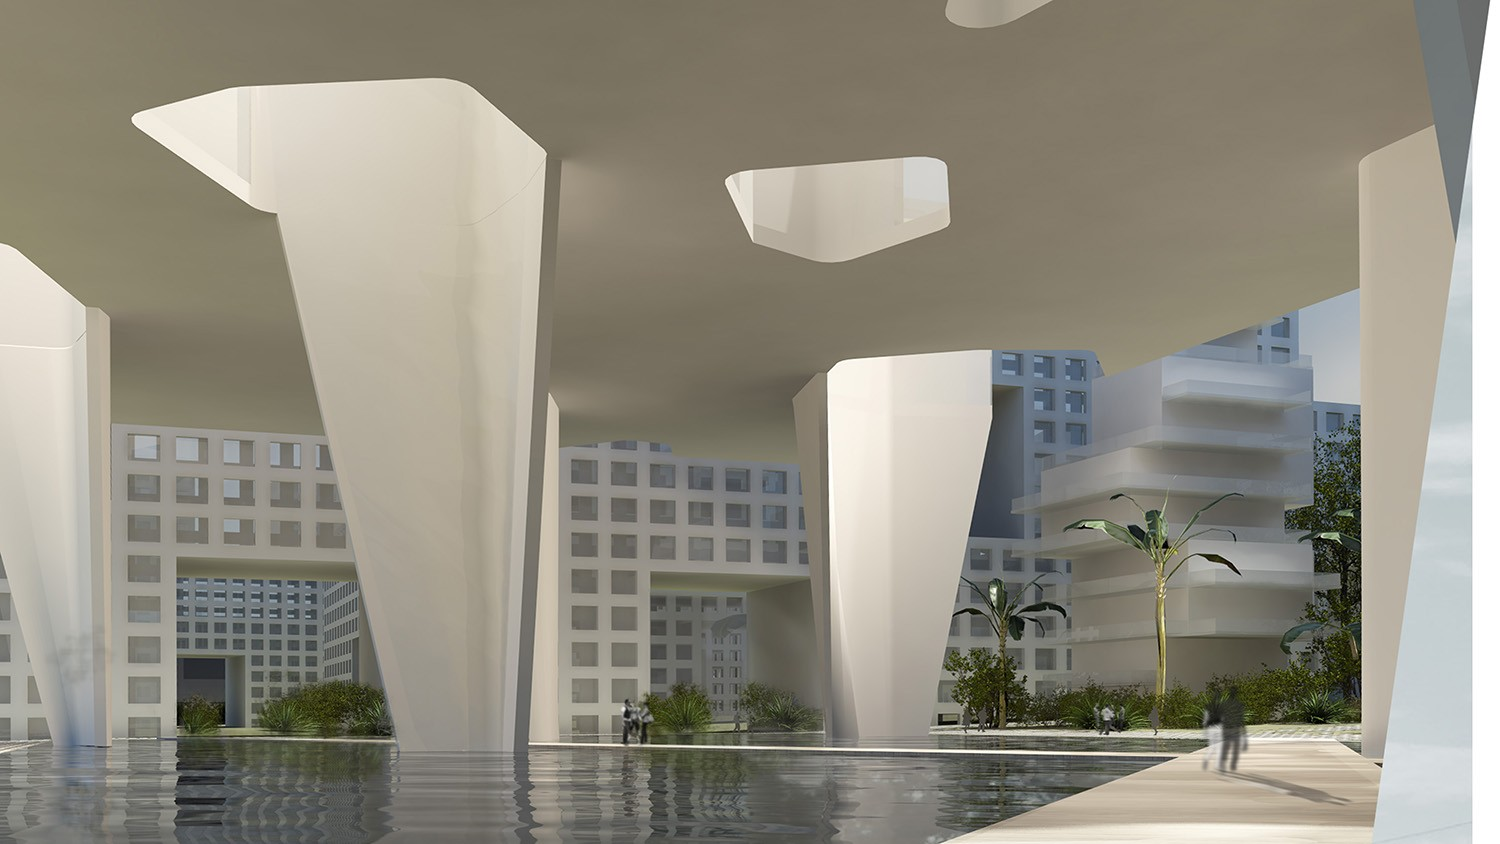 https://stevenholl.sfo2.digitaloceanspaces.com/uploads/projects/project-images/StevenHollArchitects_Dongguan_UnderDrivenVoids_WH.jpg